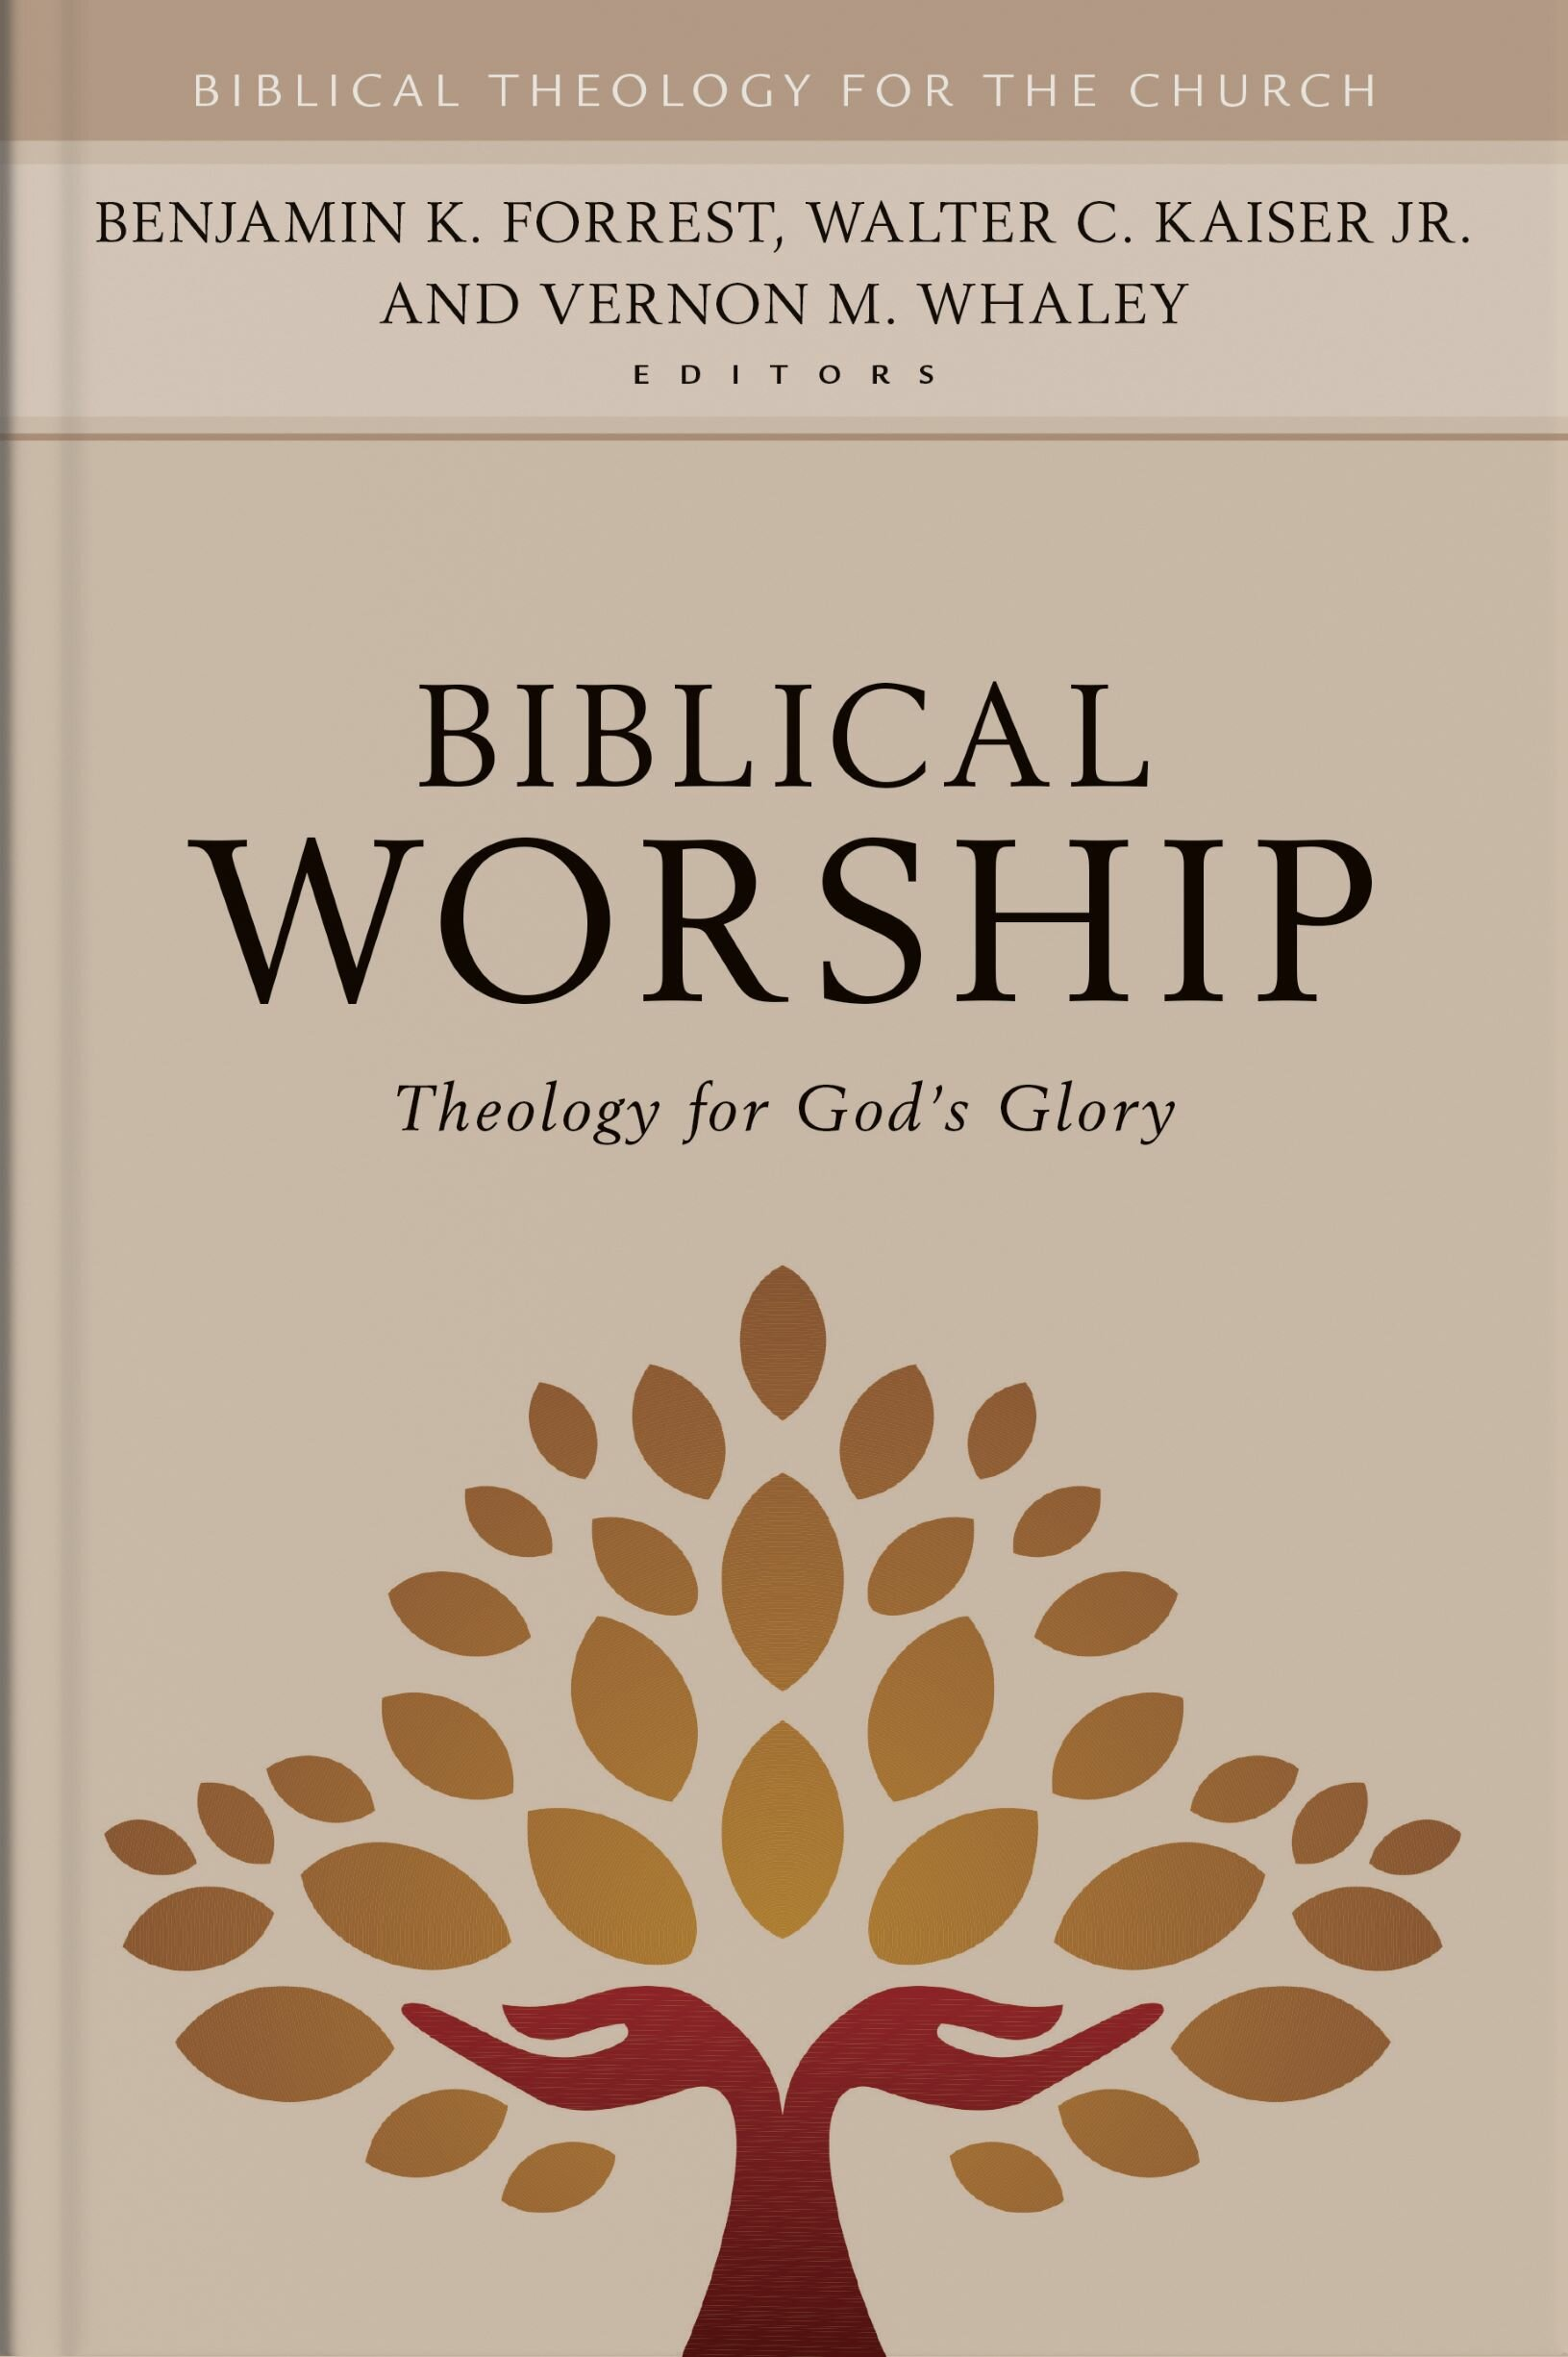 Biblical Worship: Theology for God's Glory (Biblical Theology for the Church)